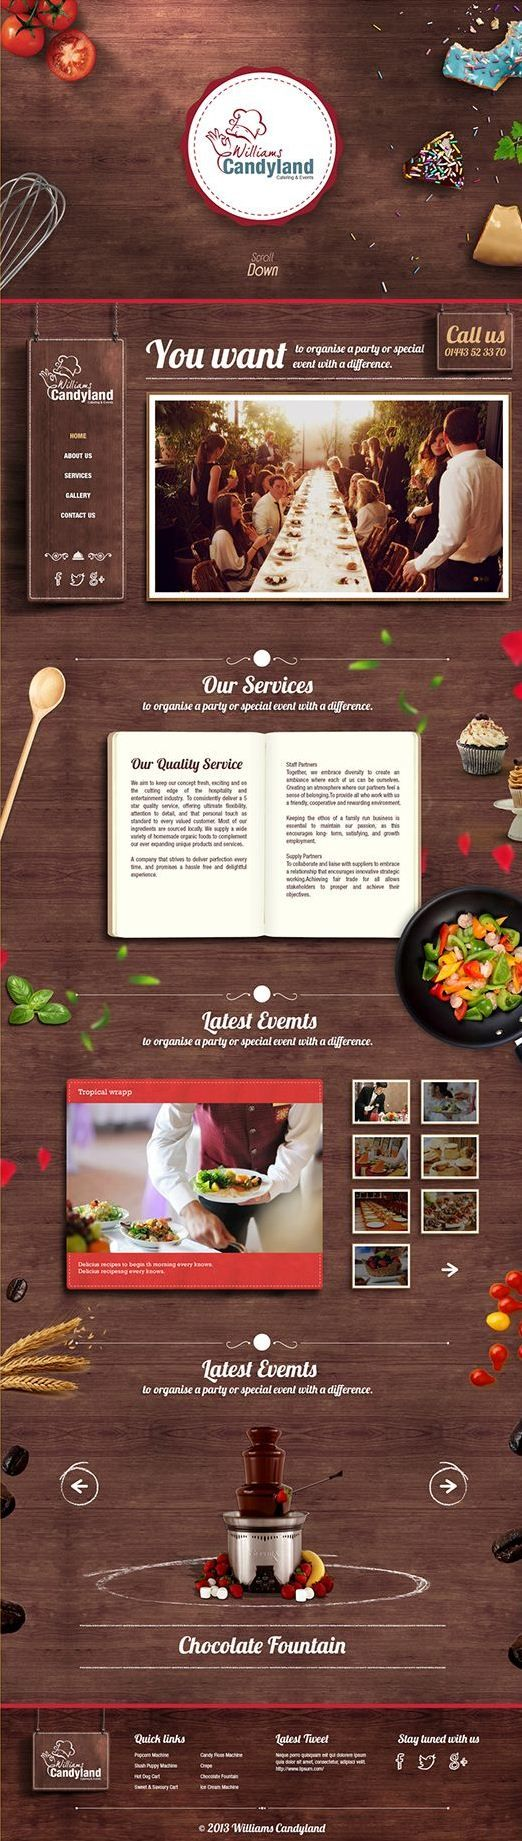 Unique Web Design, Williams Candyland #WebDesign #Design (http://www.pinterest.com/aldenchong/)